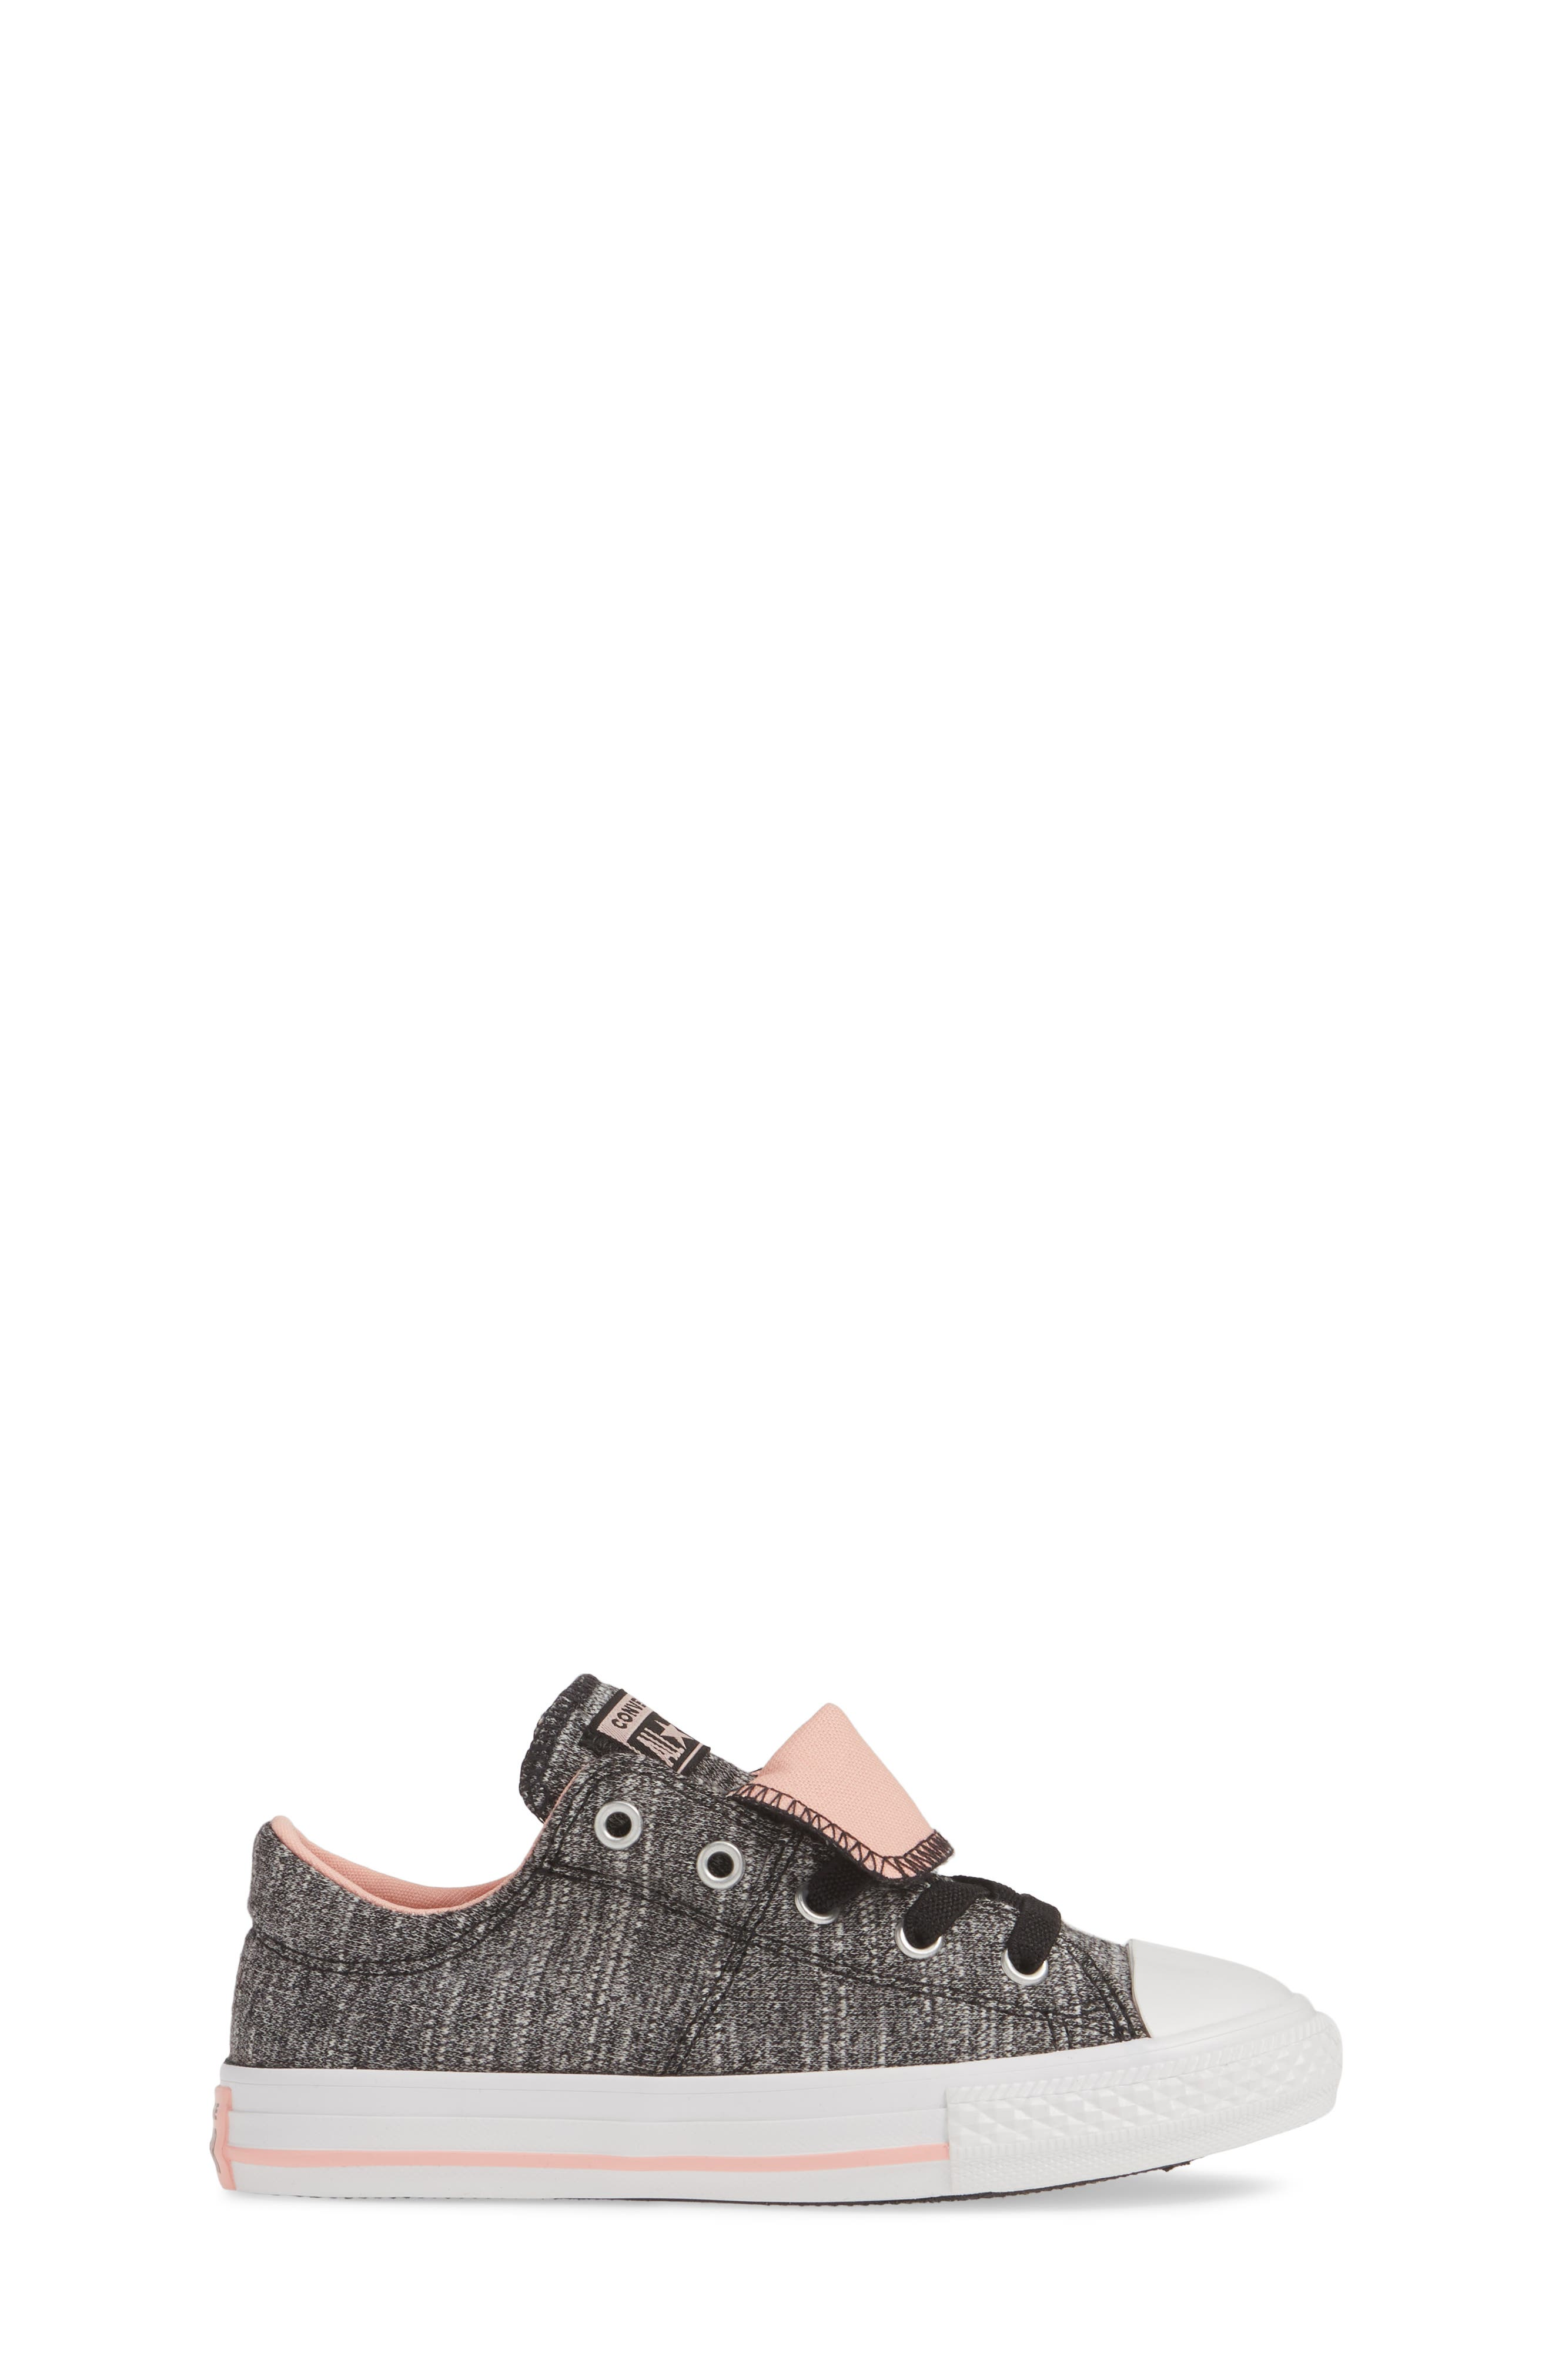 ,                             Chuck Taylor<sup>®</sup> All Star<sup>®</sup> Maddie Double Tongue Sneaker,                             Alternate thumbnail 9, color,                             002